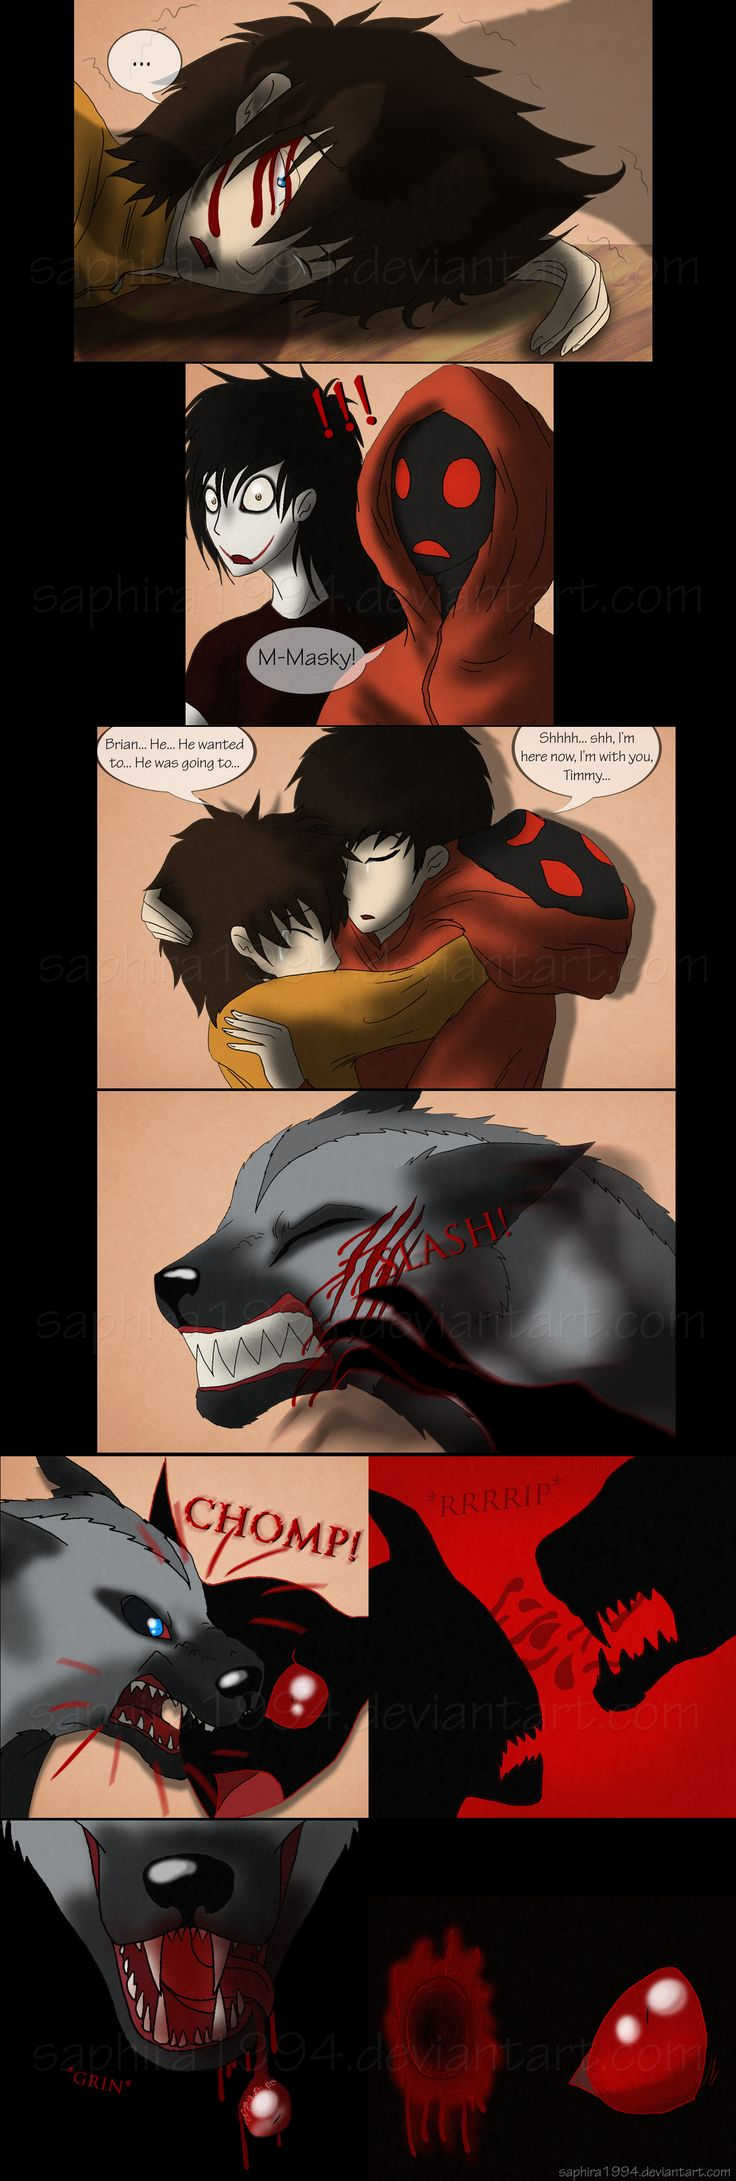 17 best images about hoodie and masky on pinterest satan